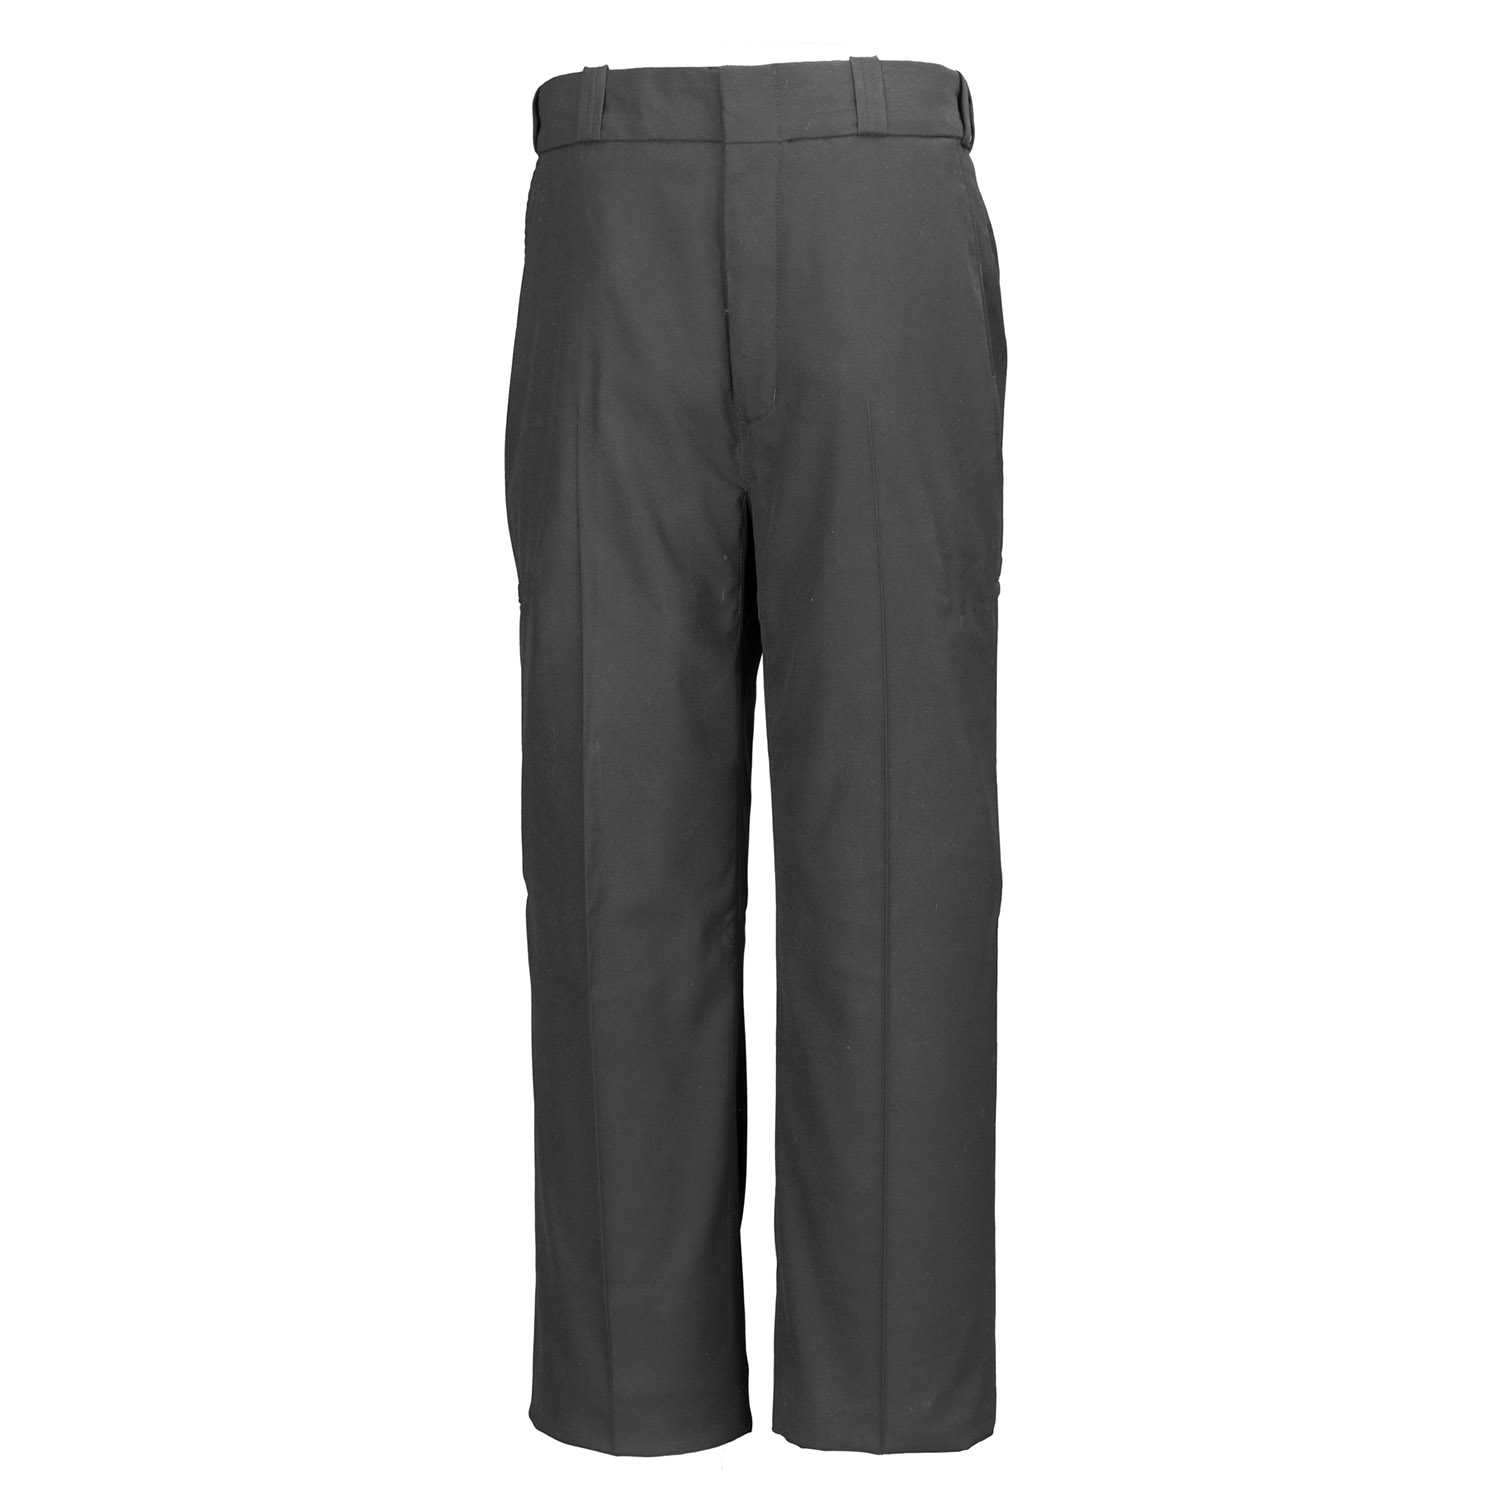 Spiewak Men's Four Pocket Polyester Performance Duty Trouser